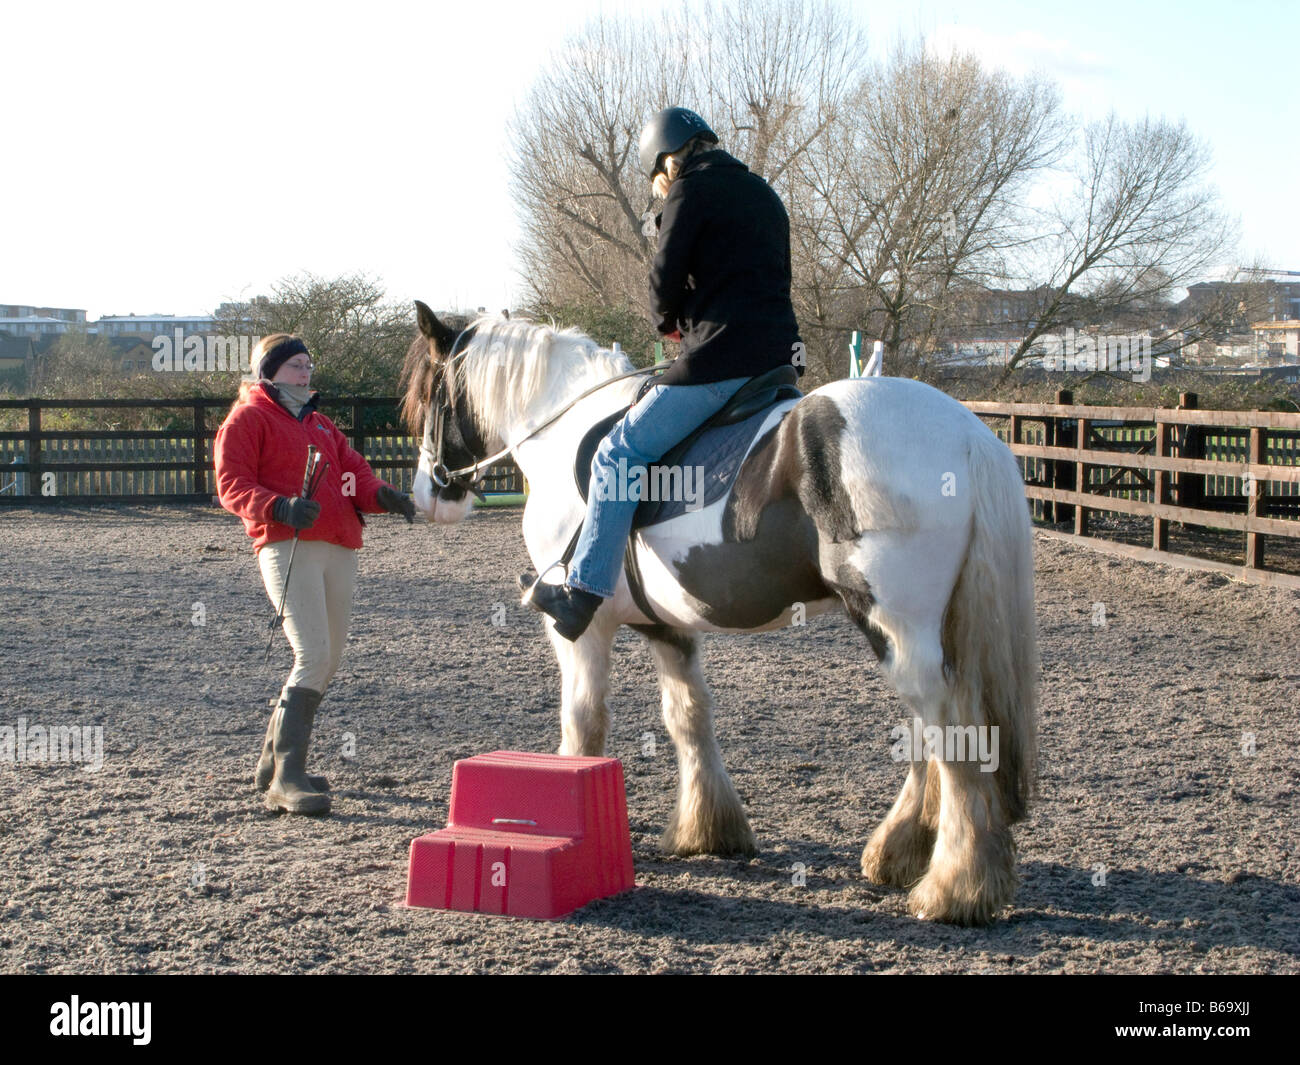 AN INSTRUCTOR TEACHING SCHOOL CHILDREN TO RIDE AT A RIDING SCHOOL LONDON, UK. Photo ©Julio Etchart - Stock Image